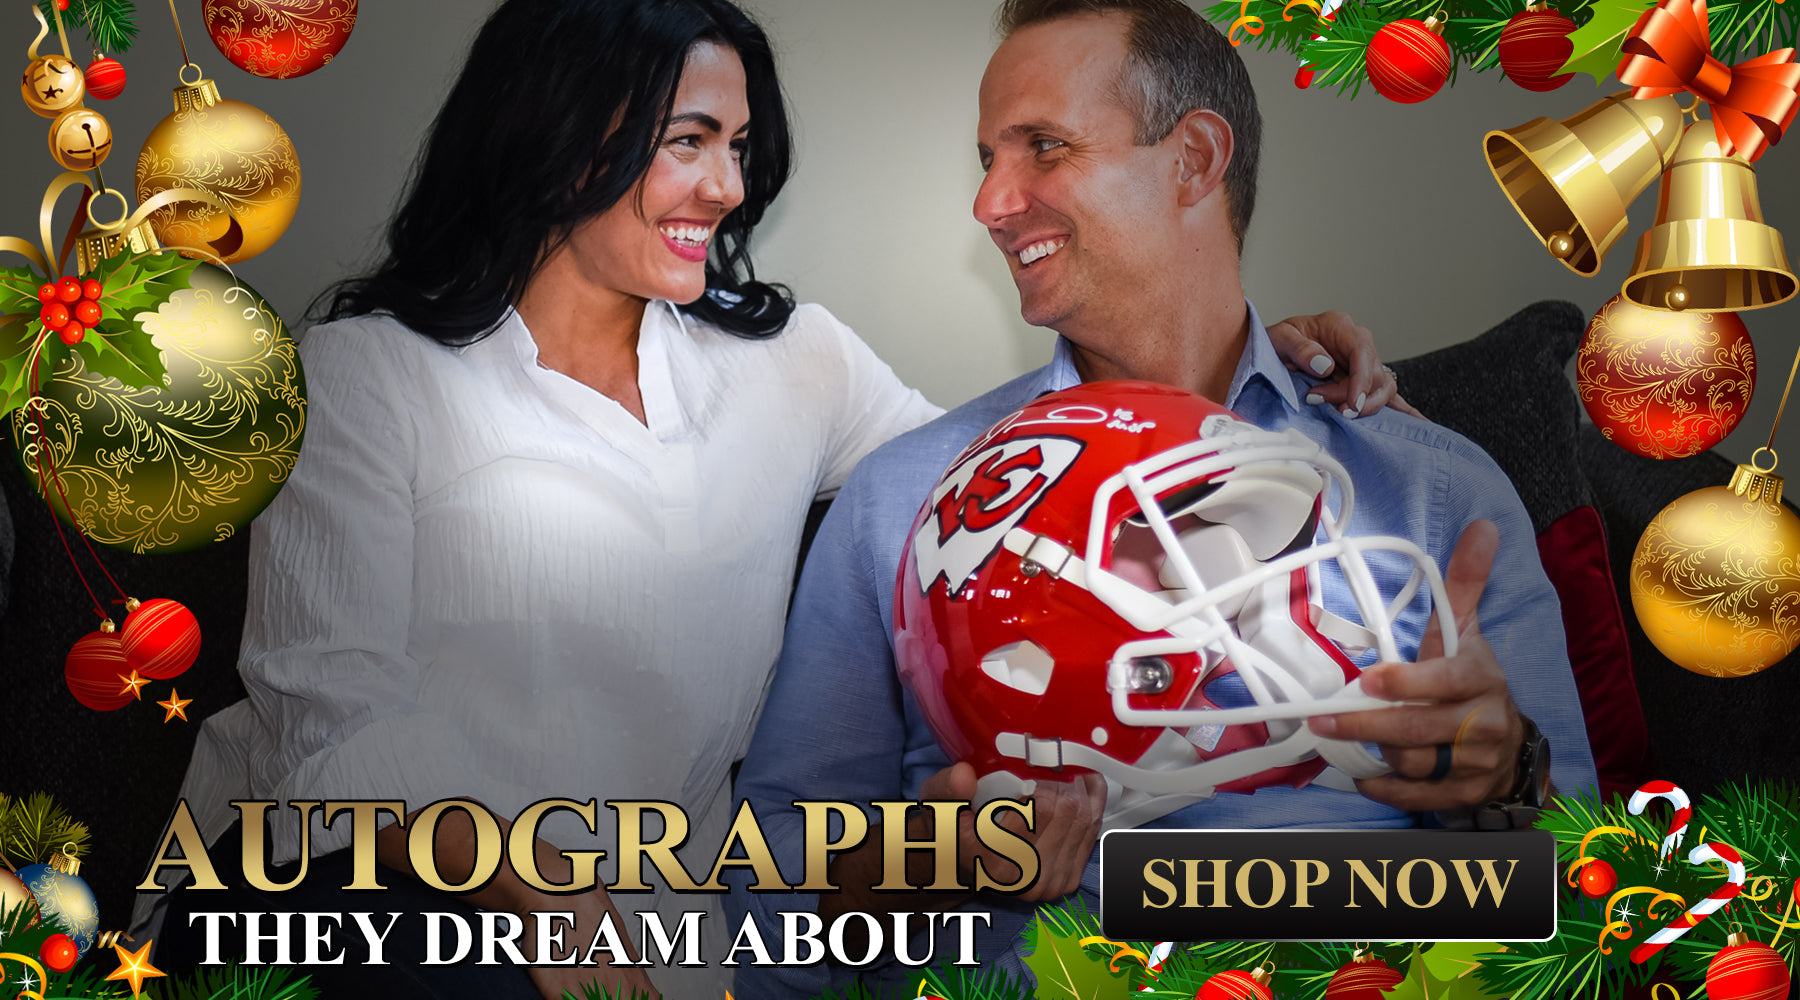 Authentic Autographed Sports Memorabilia